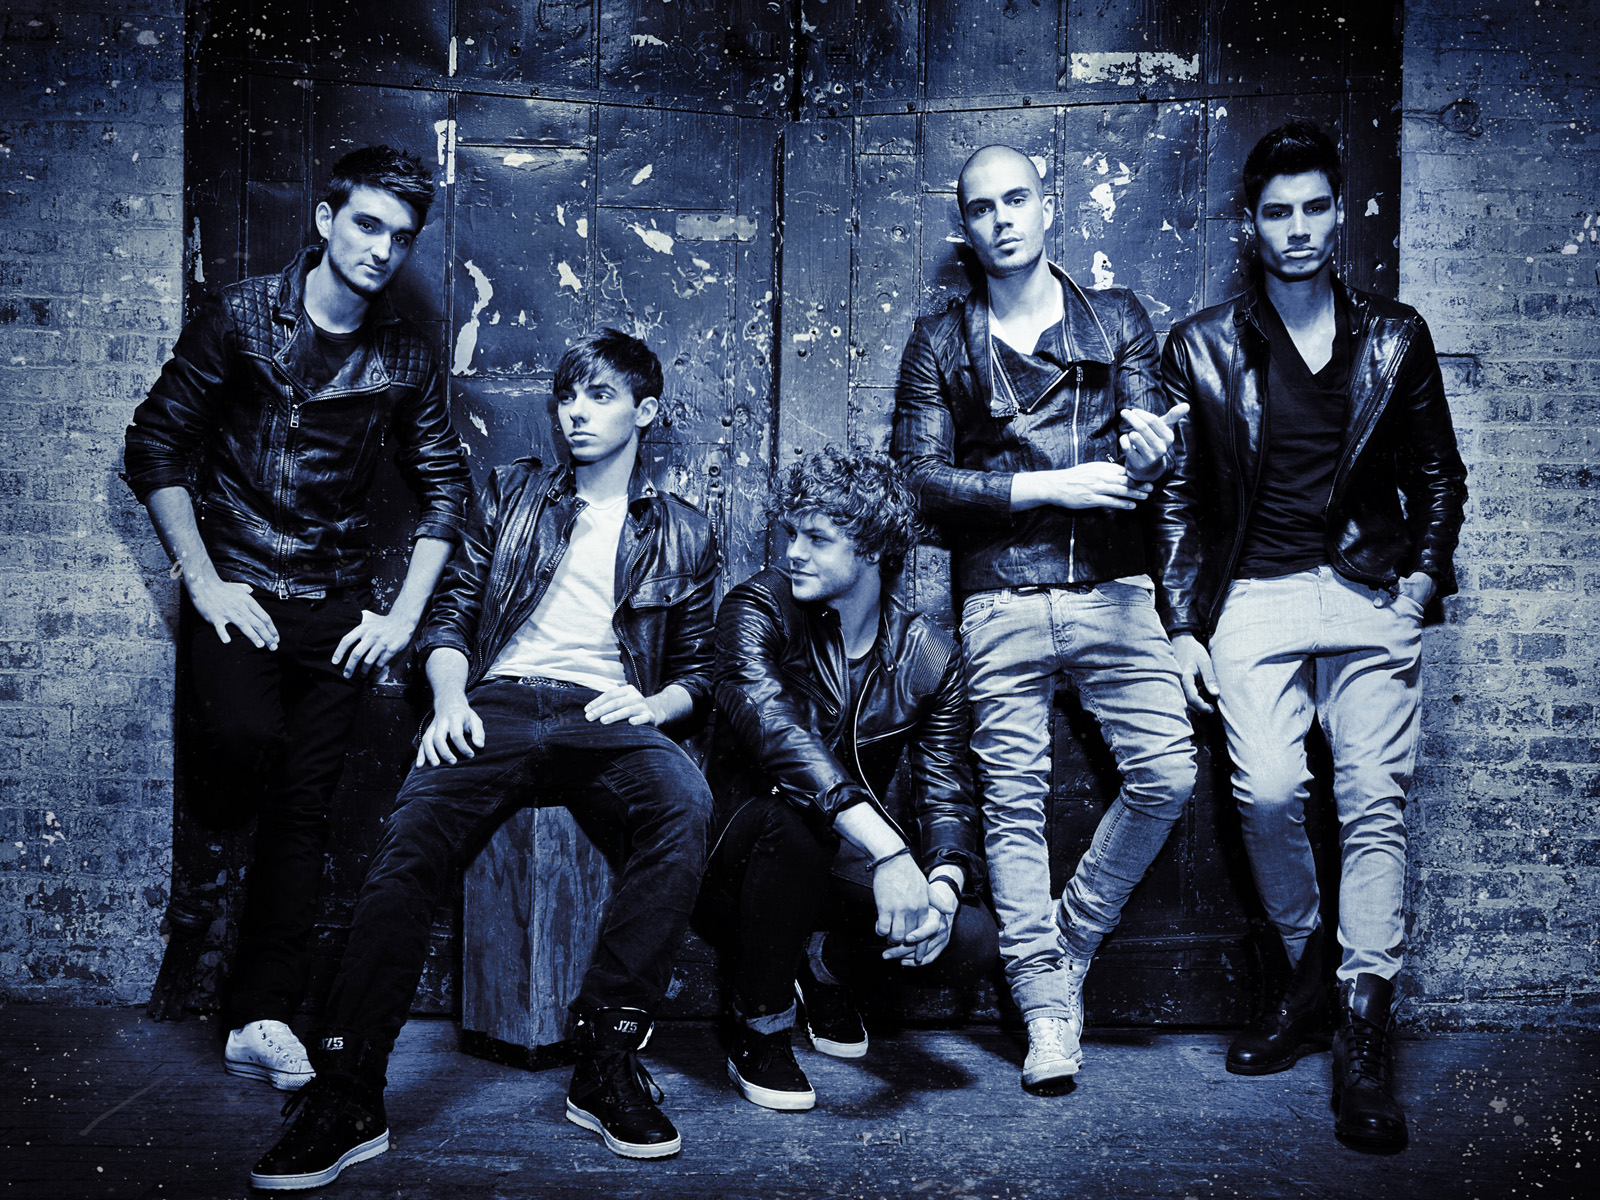 The wanted the wanted - photo#13